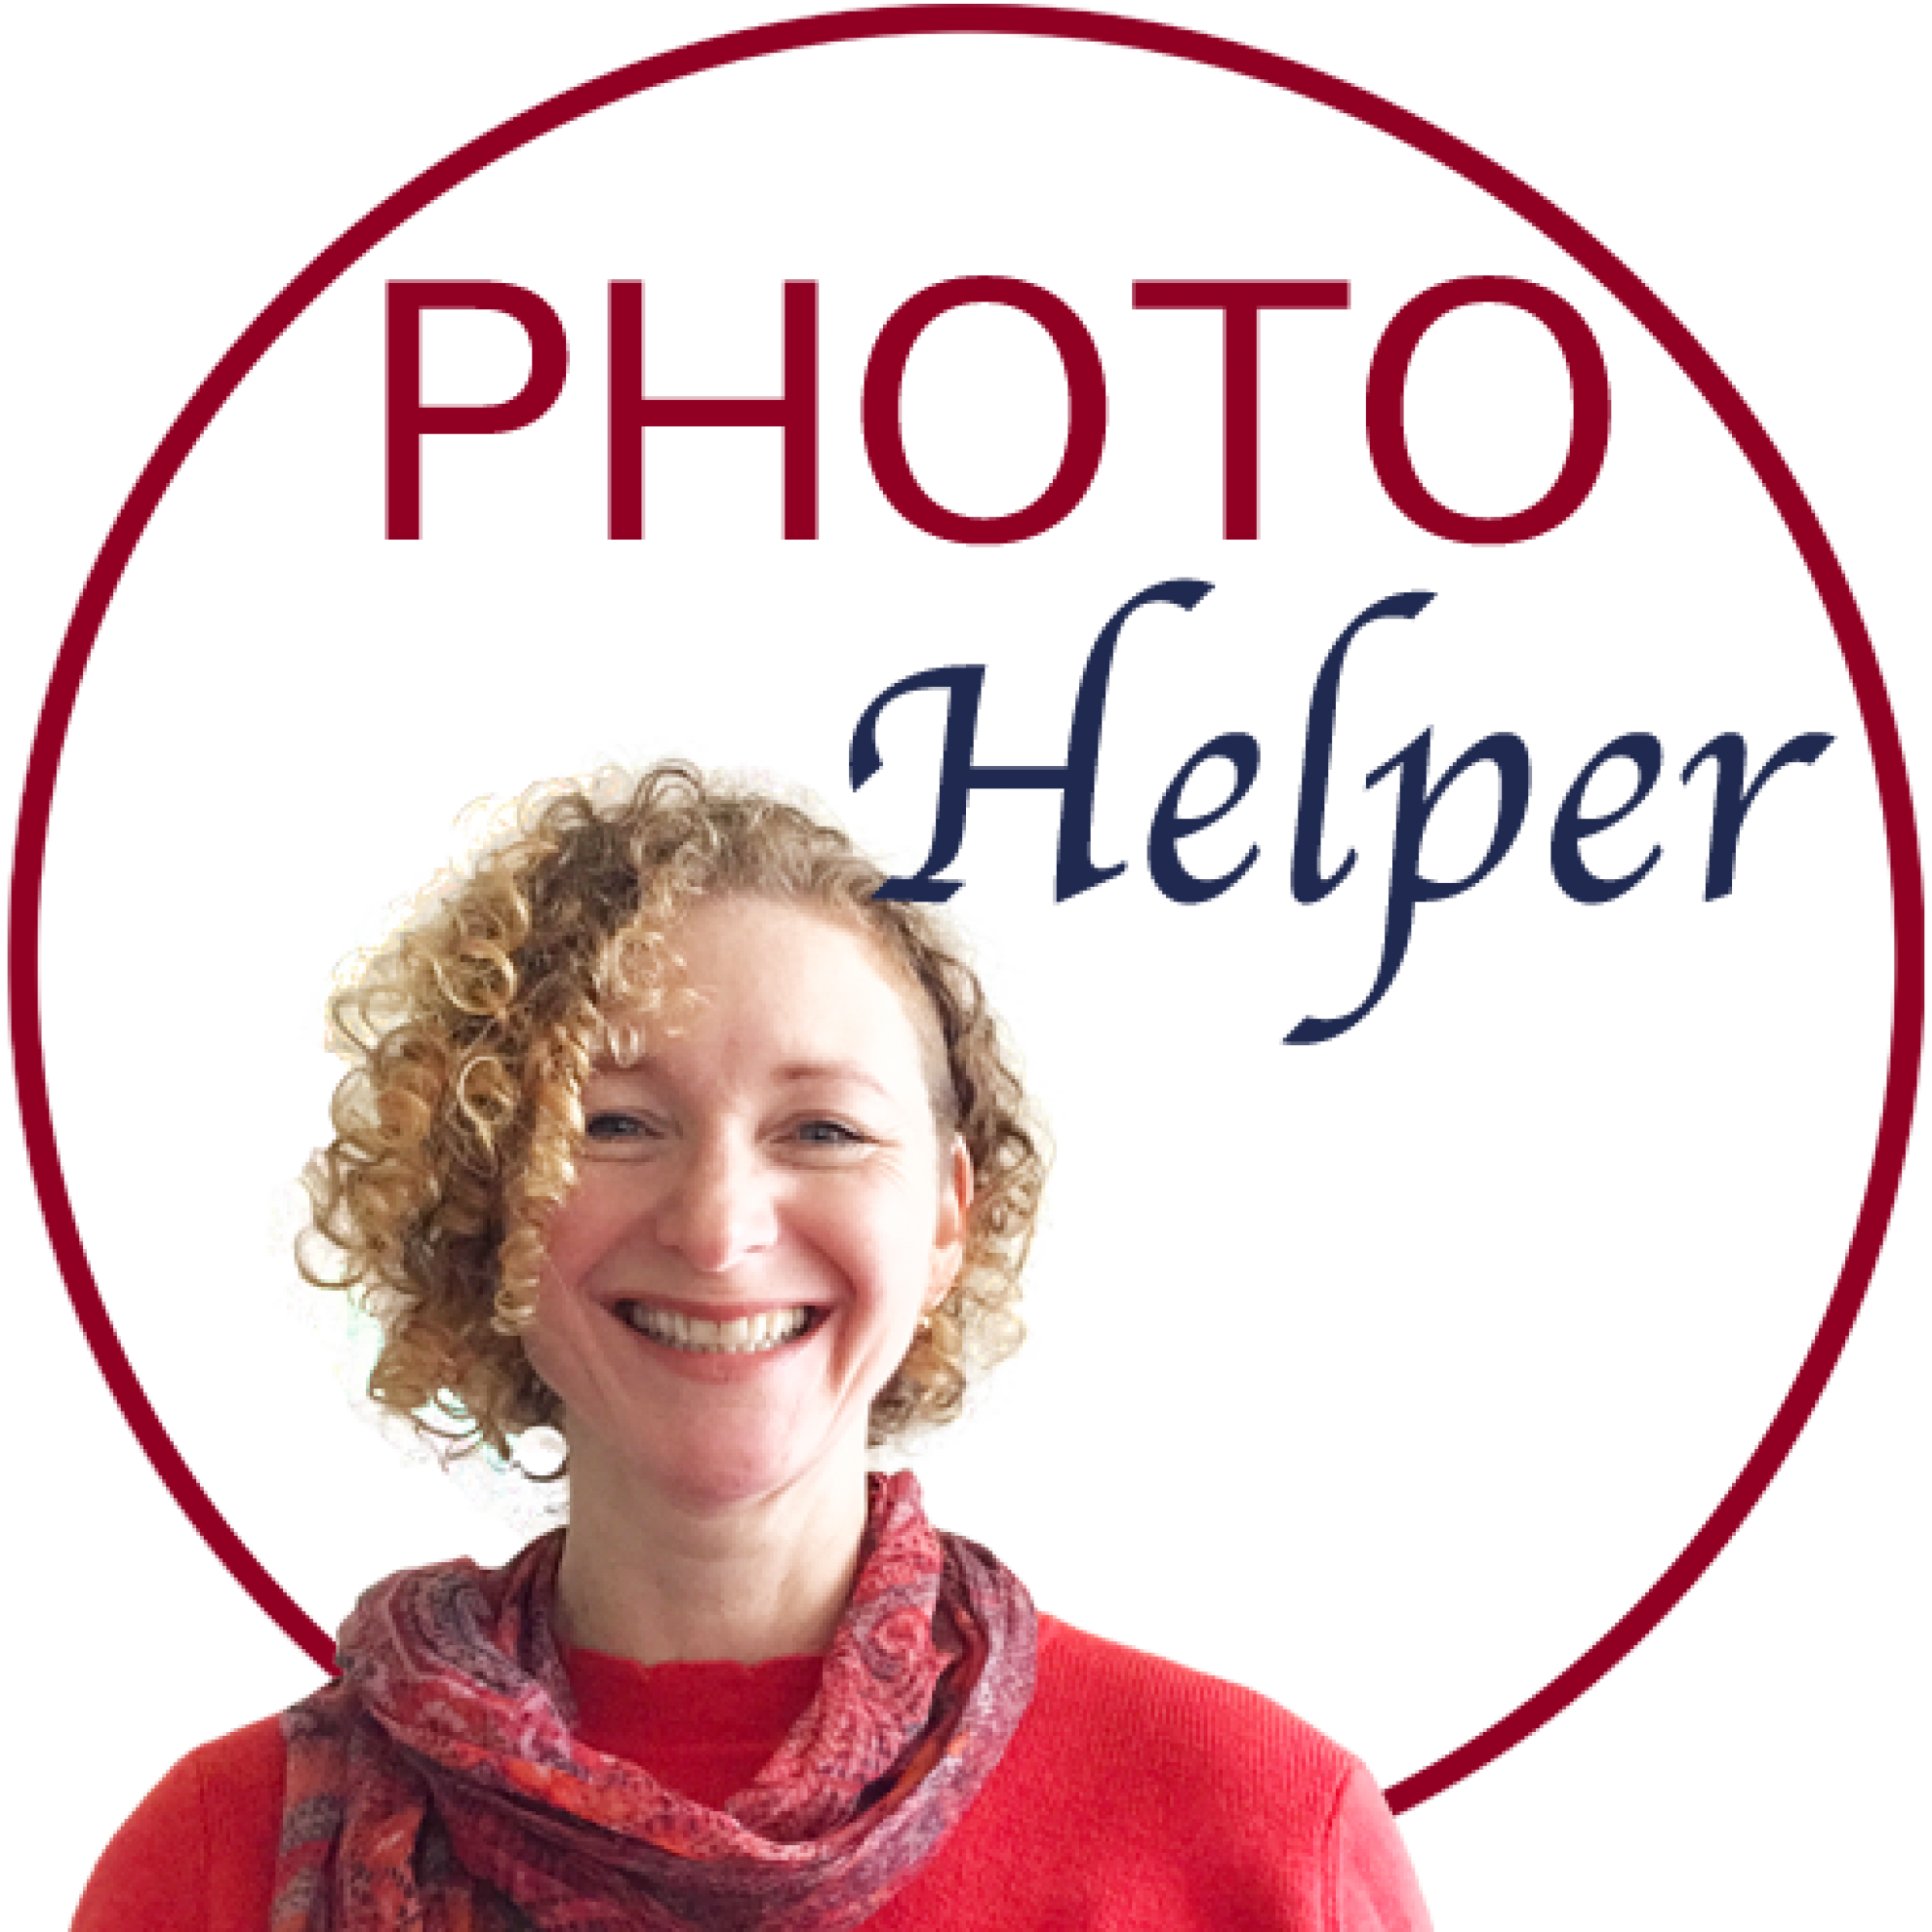 cropped-Photo-Helper-logo-1-512x512-1-1.png